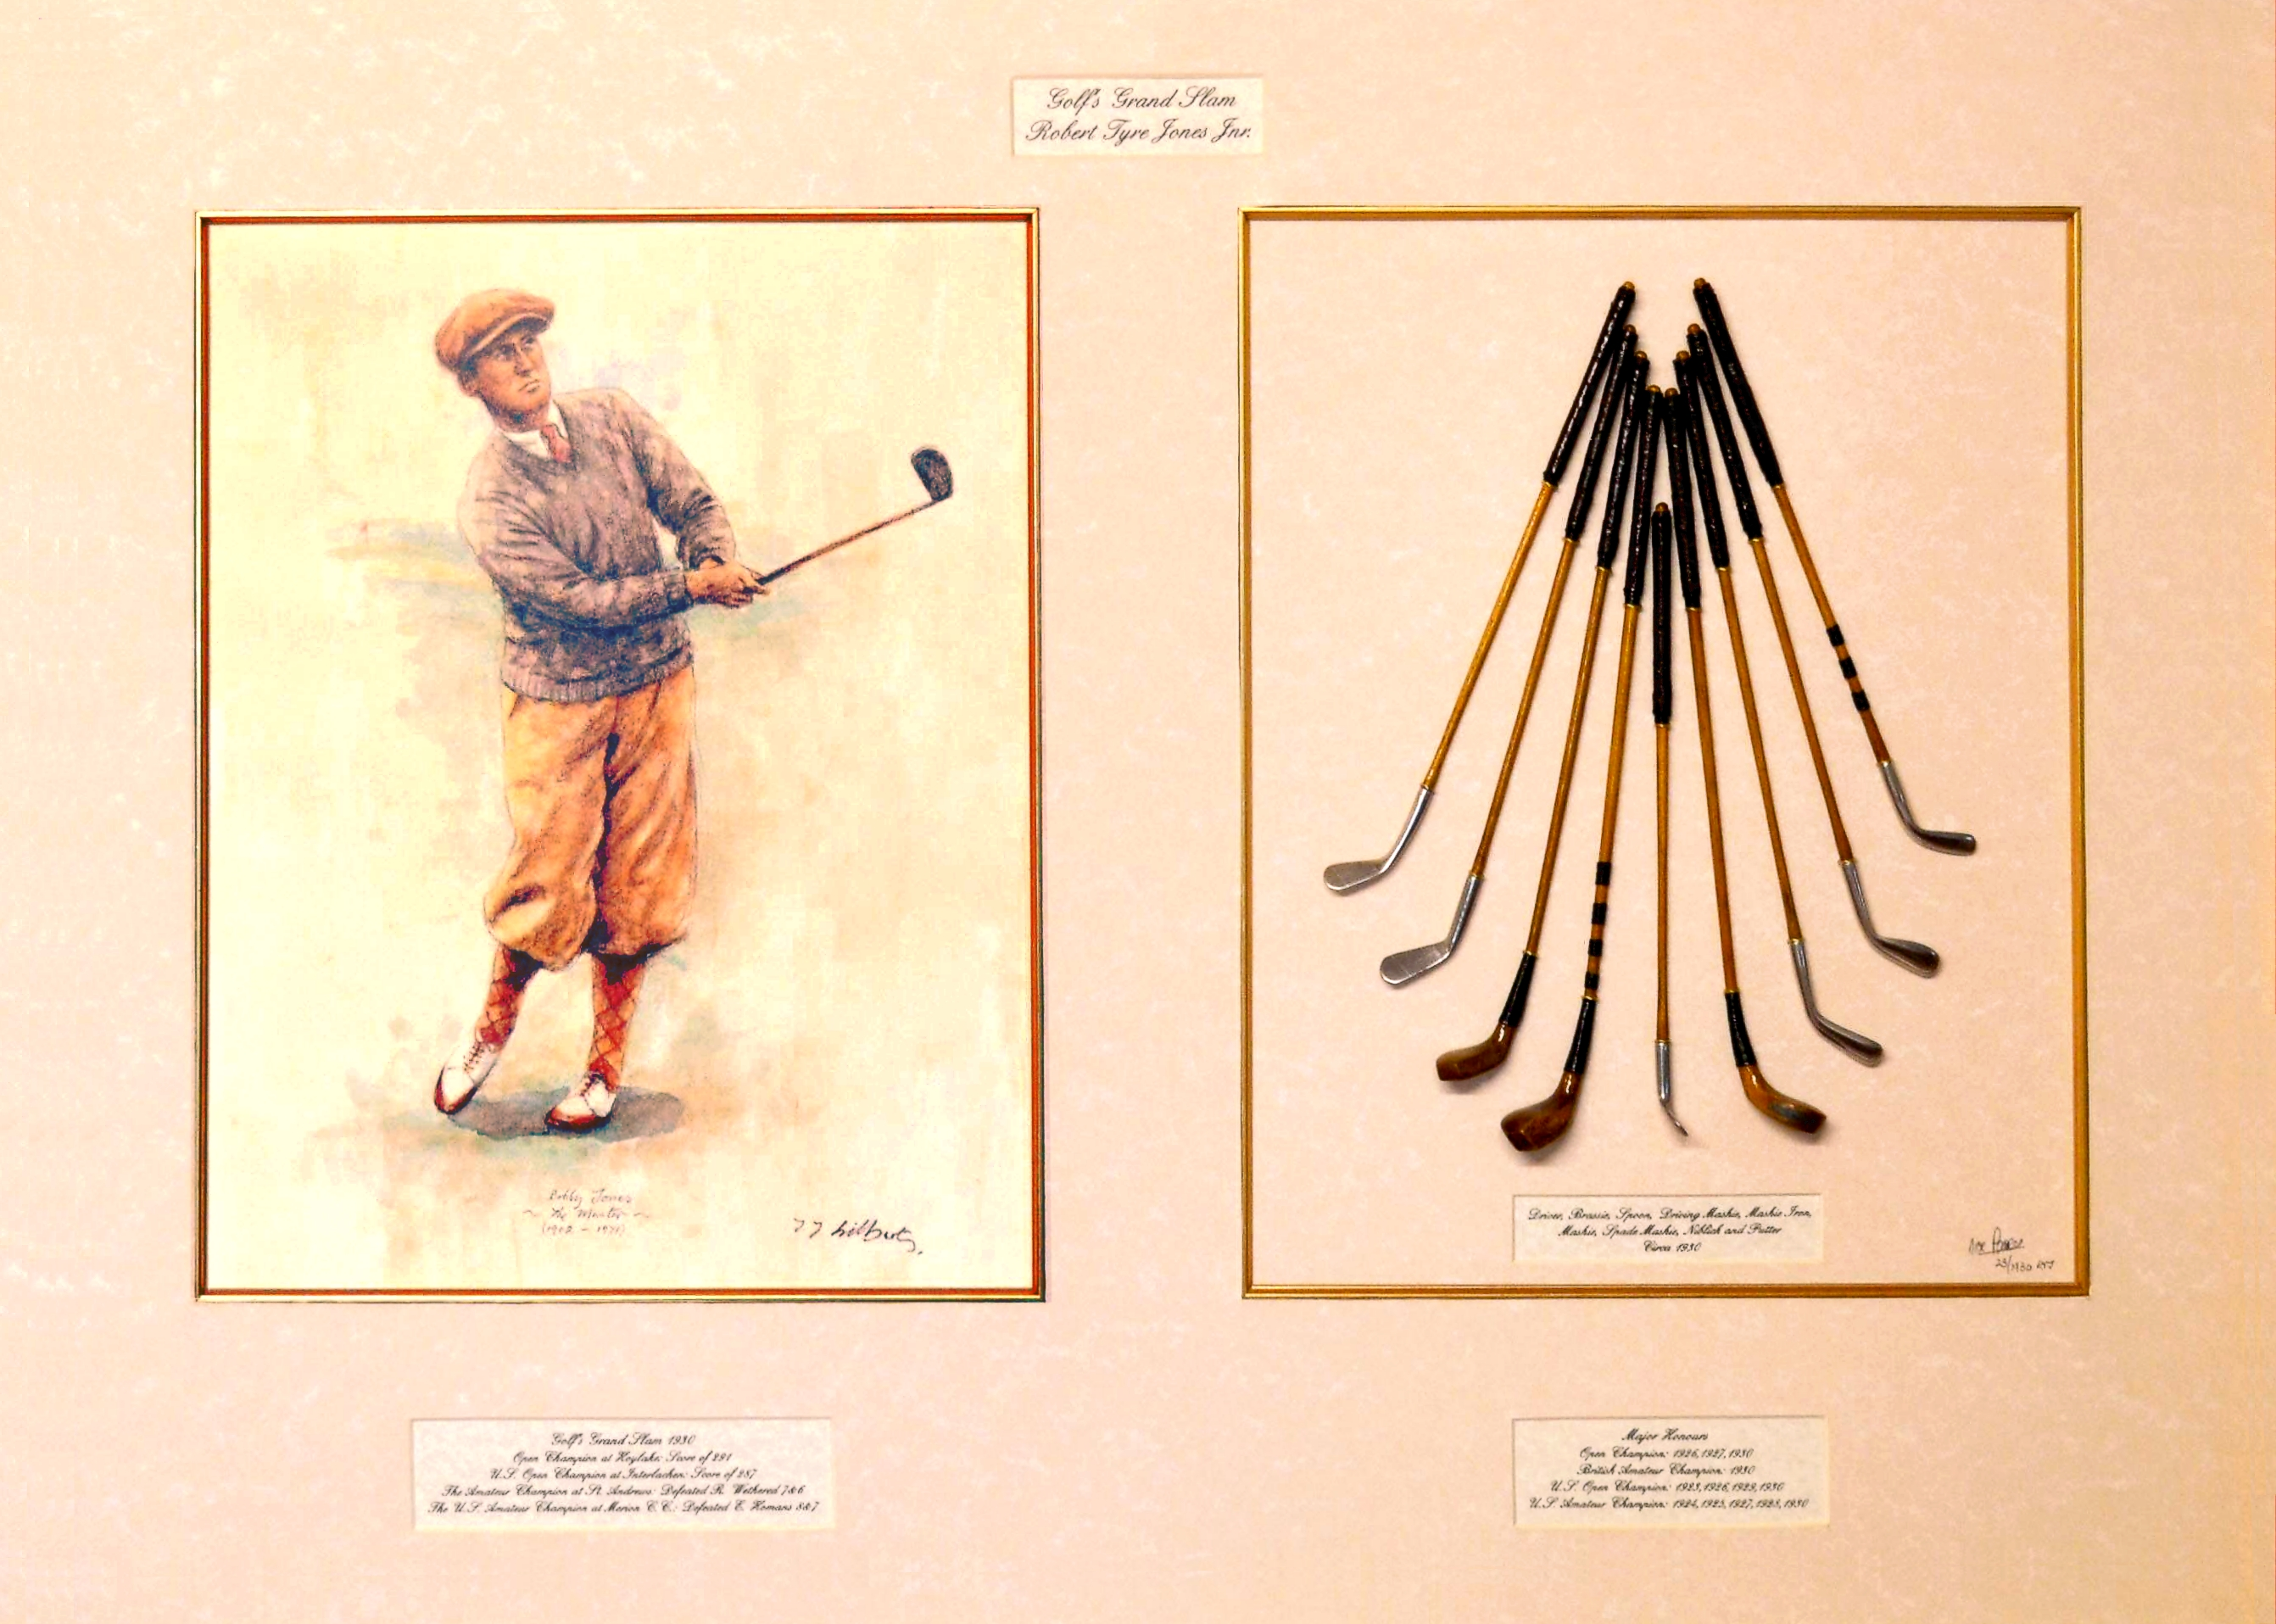 Golf's Grand Slam 1930, Robert Tyre Jones Jr.